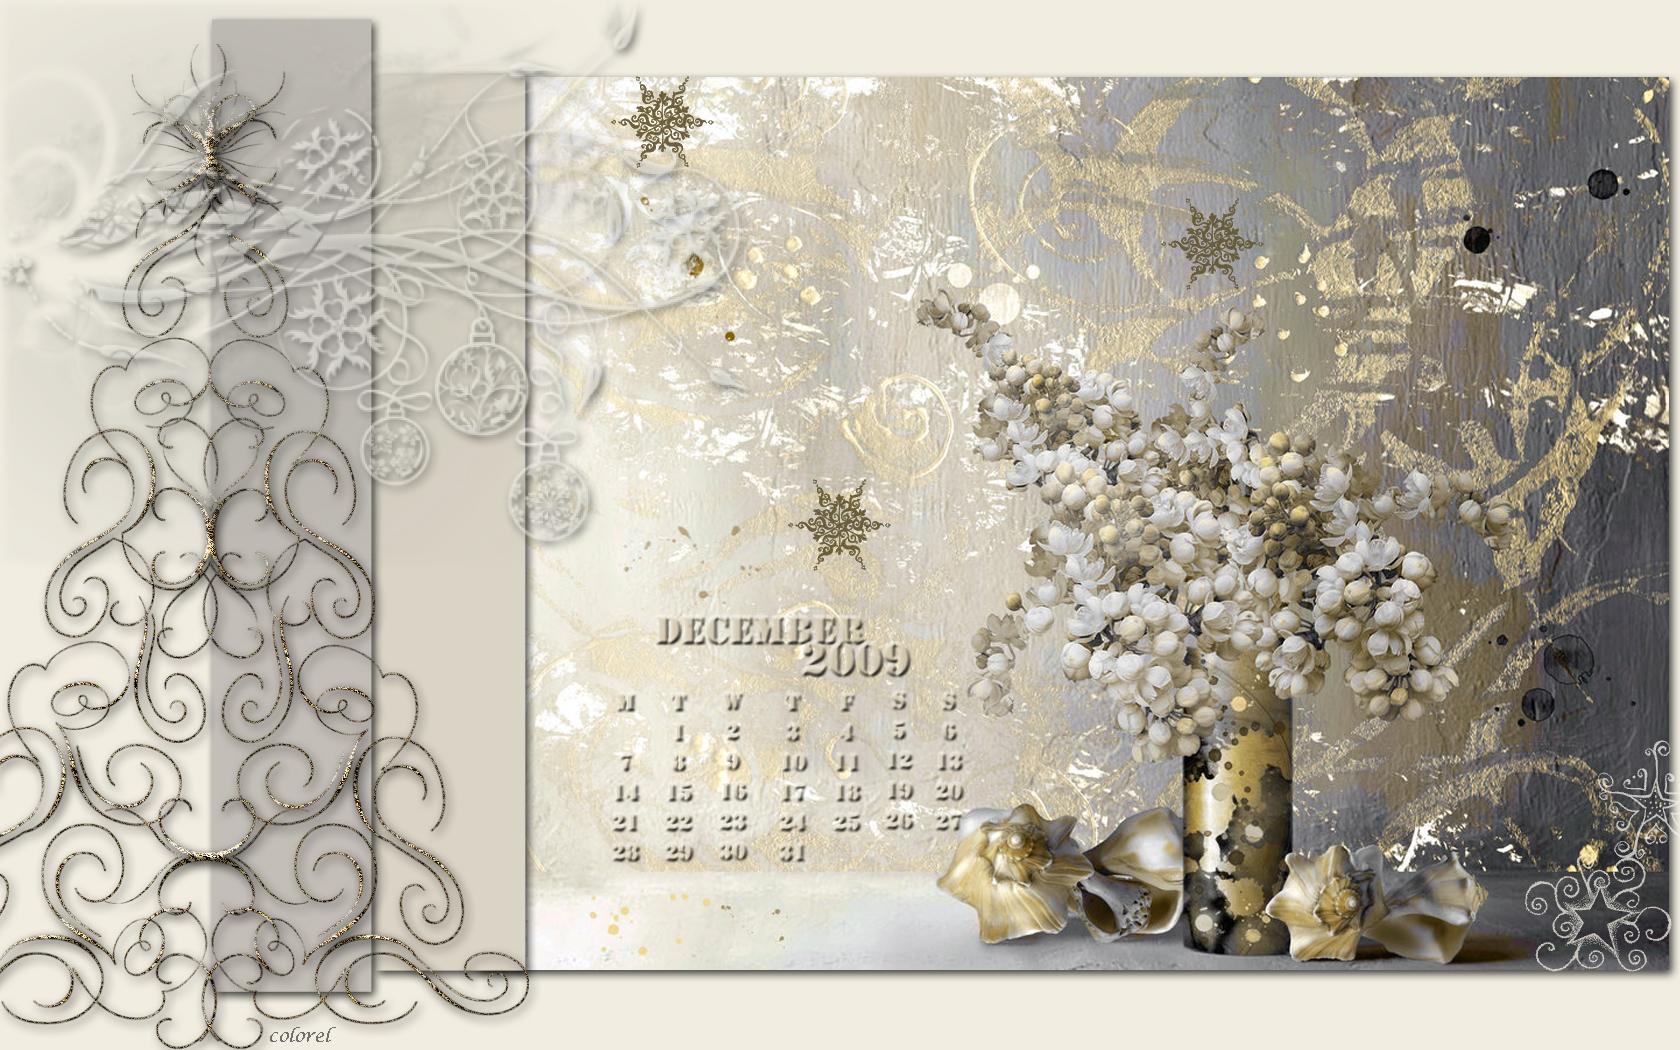 December Wallpapers December Stock Photos